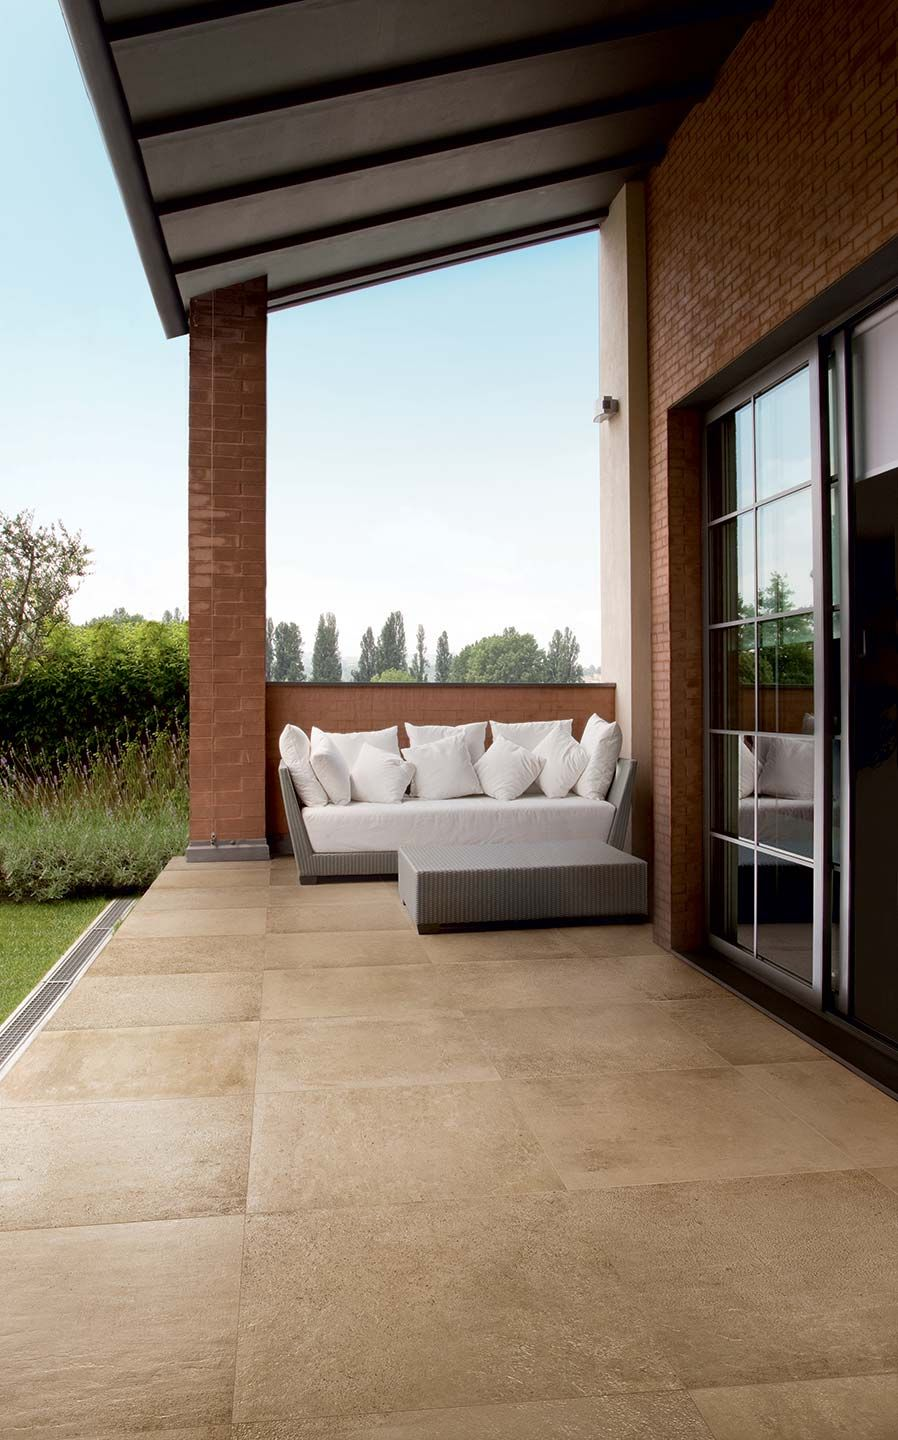 Terracotta tiles floor imitation with ceramic tiles terra terracotta tiles floor imitation with ceramic tiles terra collection dailygadgetfo Image collections